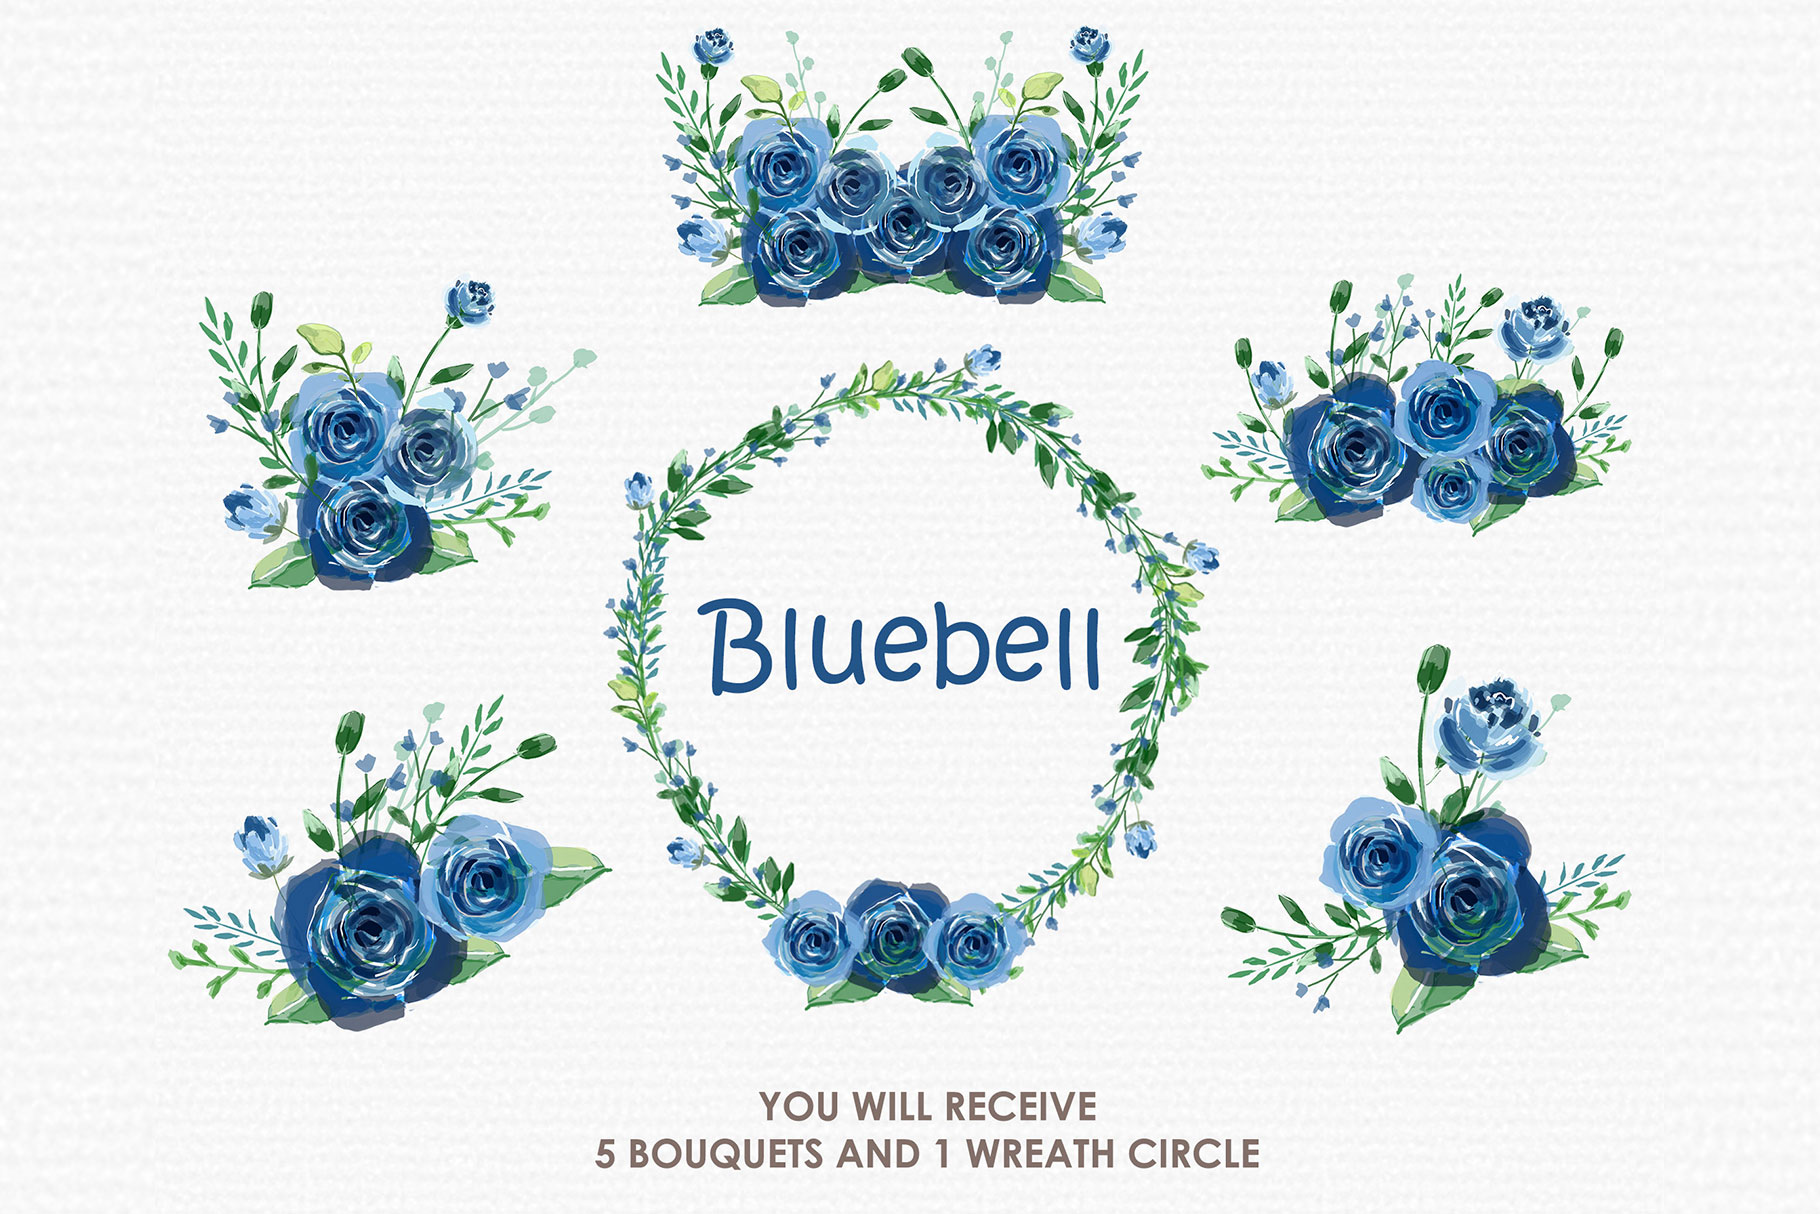 Bluebell - Digital Watercolor Floral Flower Style Clipart example image 3